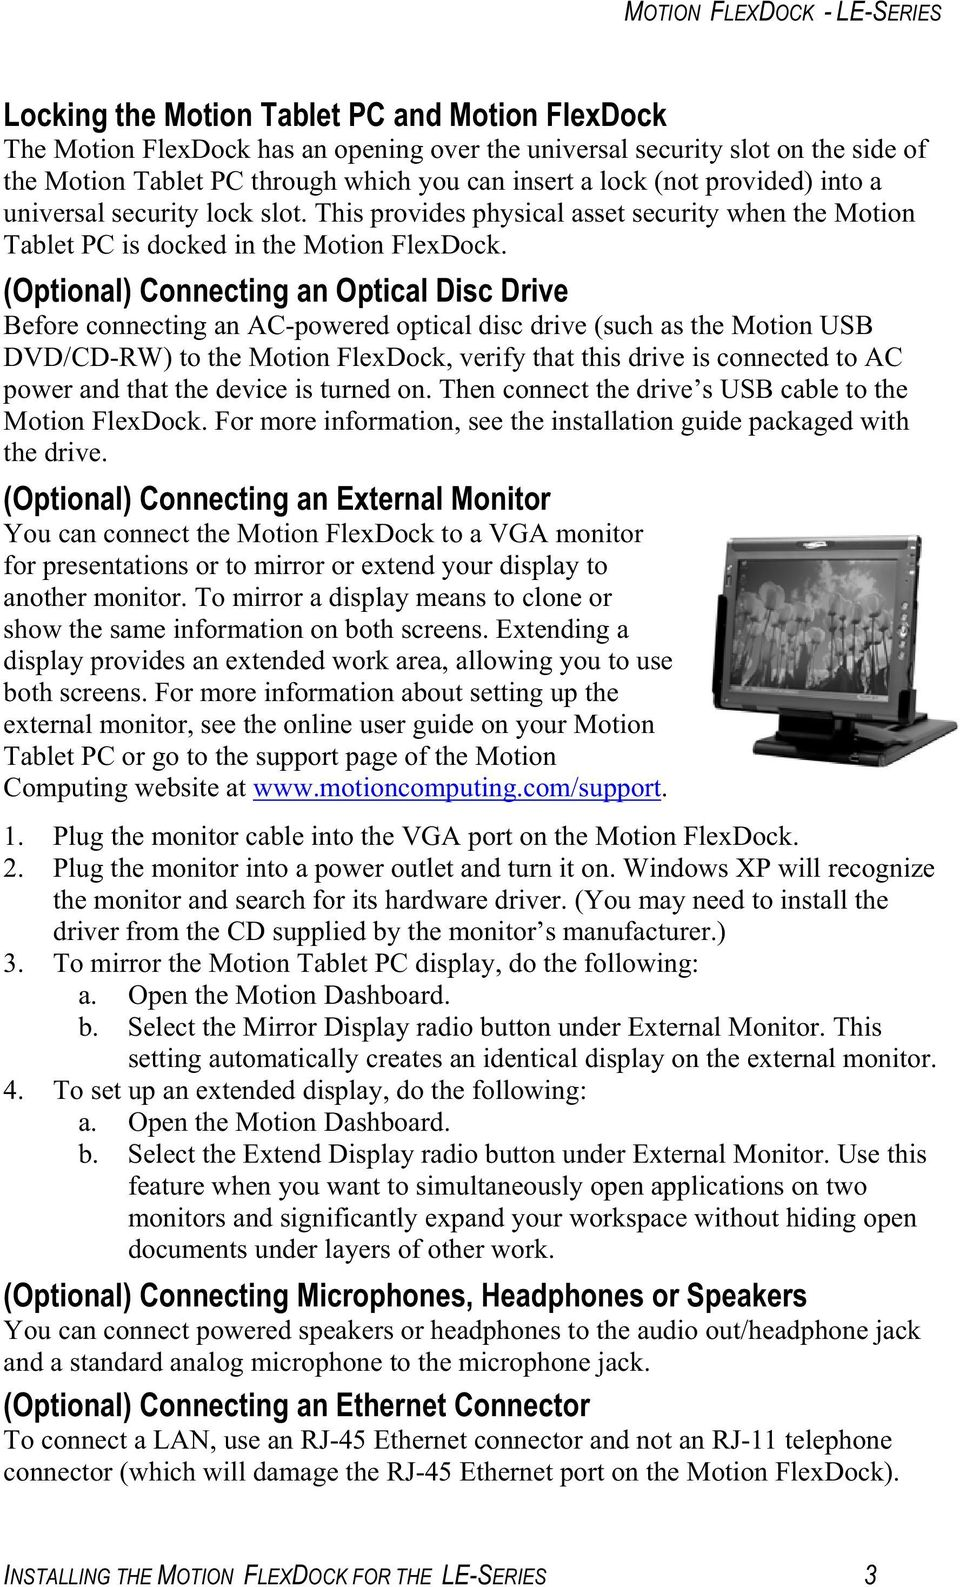 (Optional) Connecting an Optical Disc Drive Before connecting an AC-powered optical disc drive (such as the Motion USB DVD/CD-RW) to the Motion FlexDock, verify that this drive is connected to AC